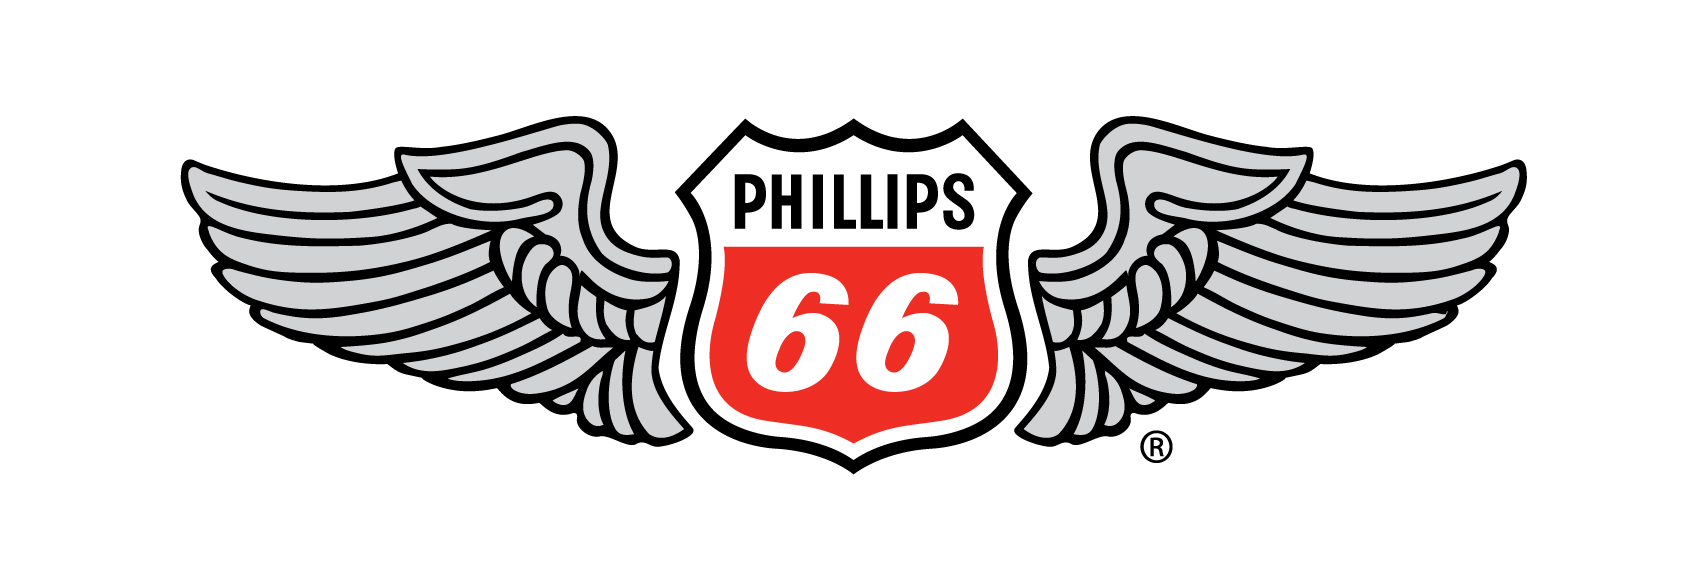 phillips-66-aviation-logo.jpg